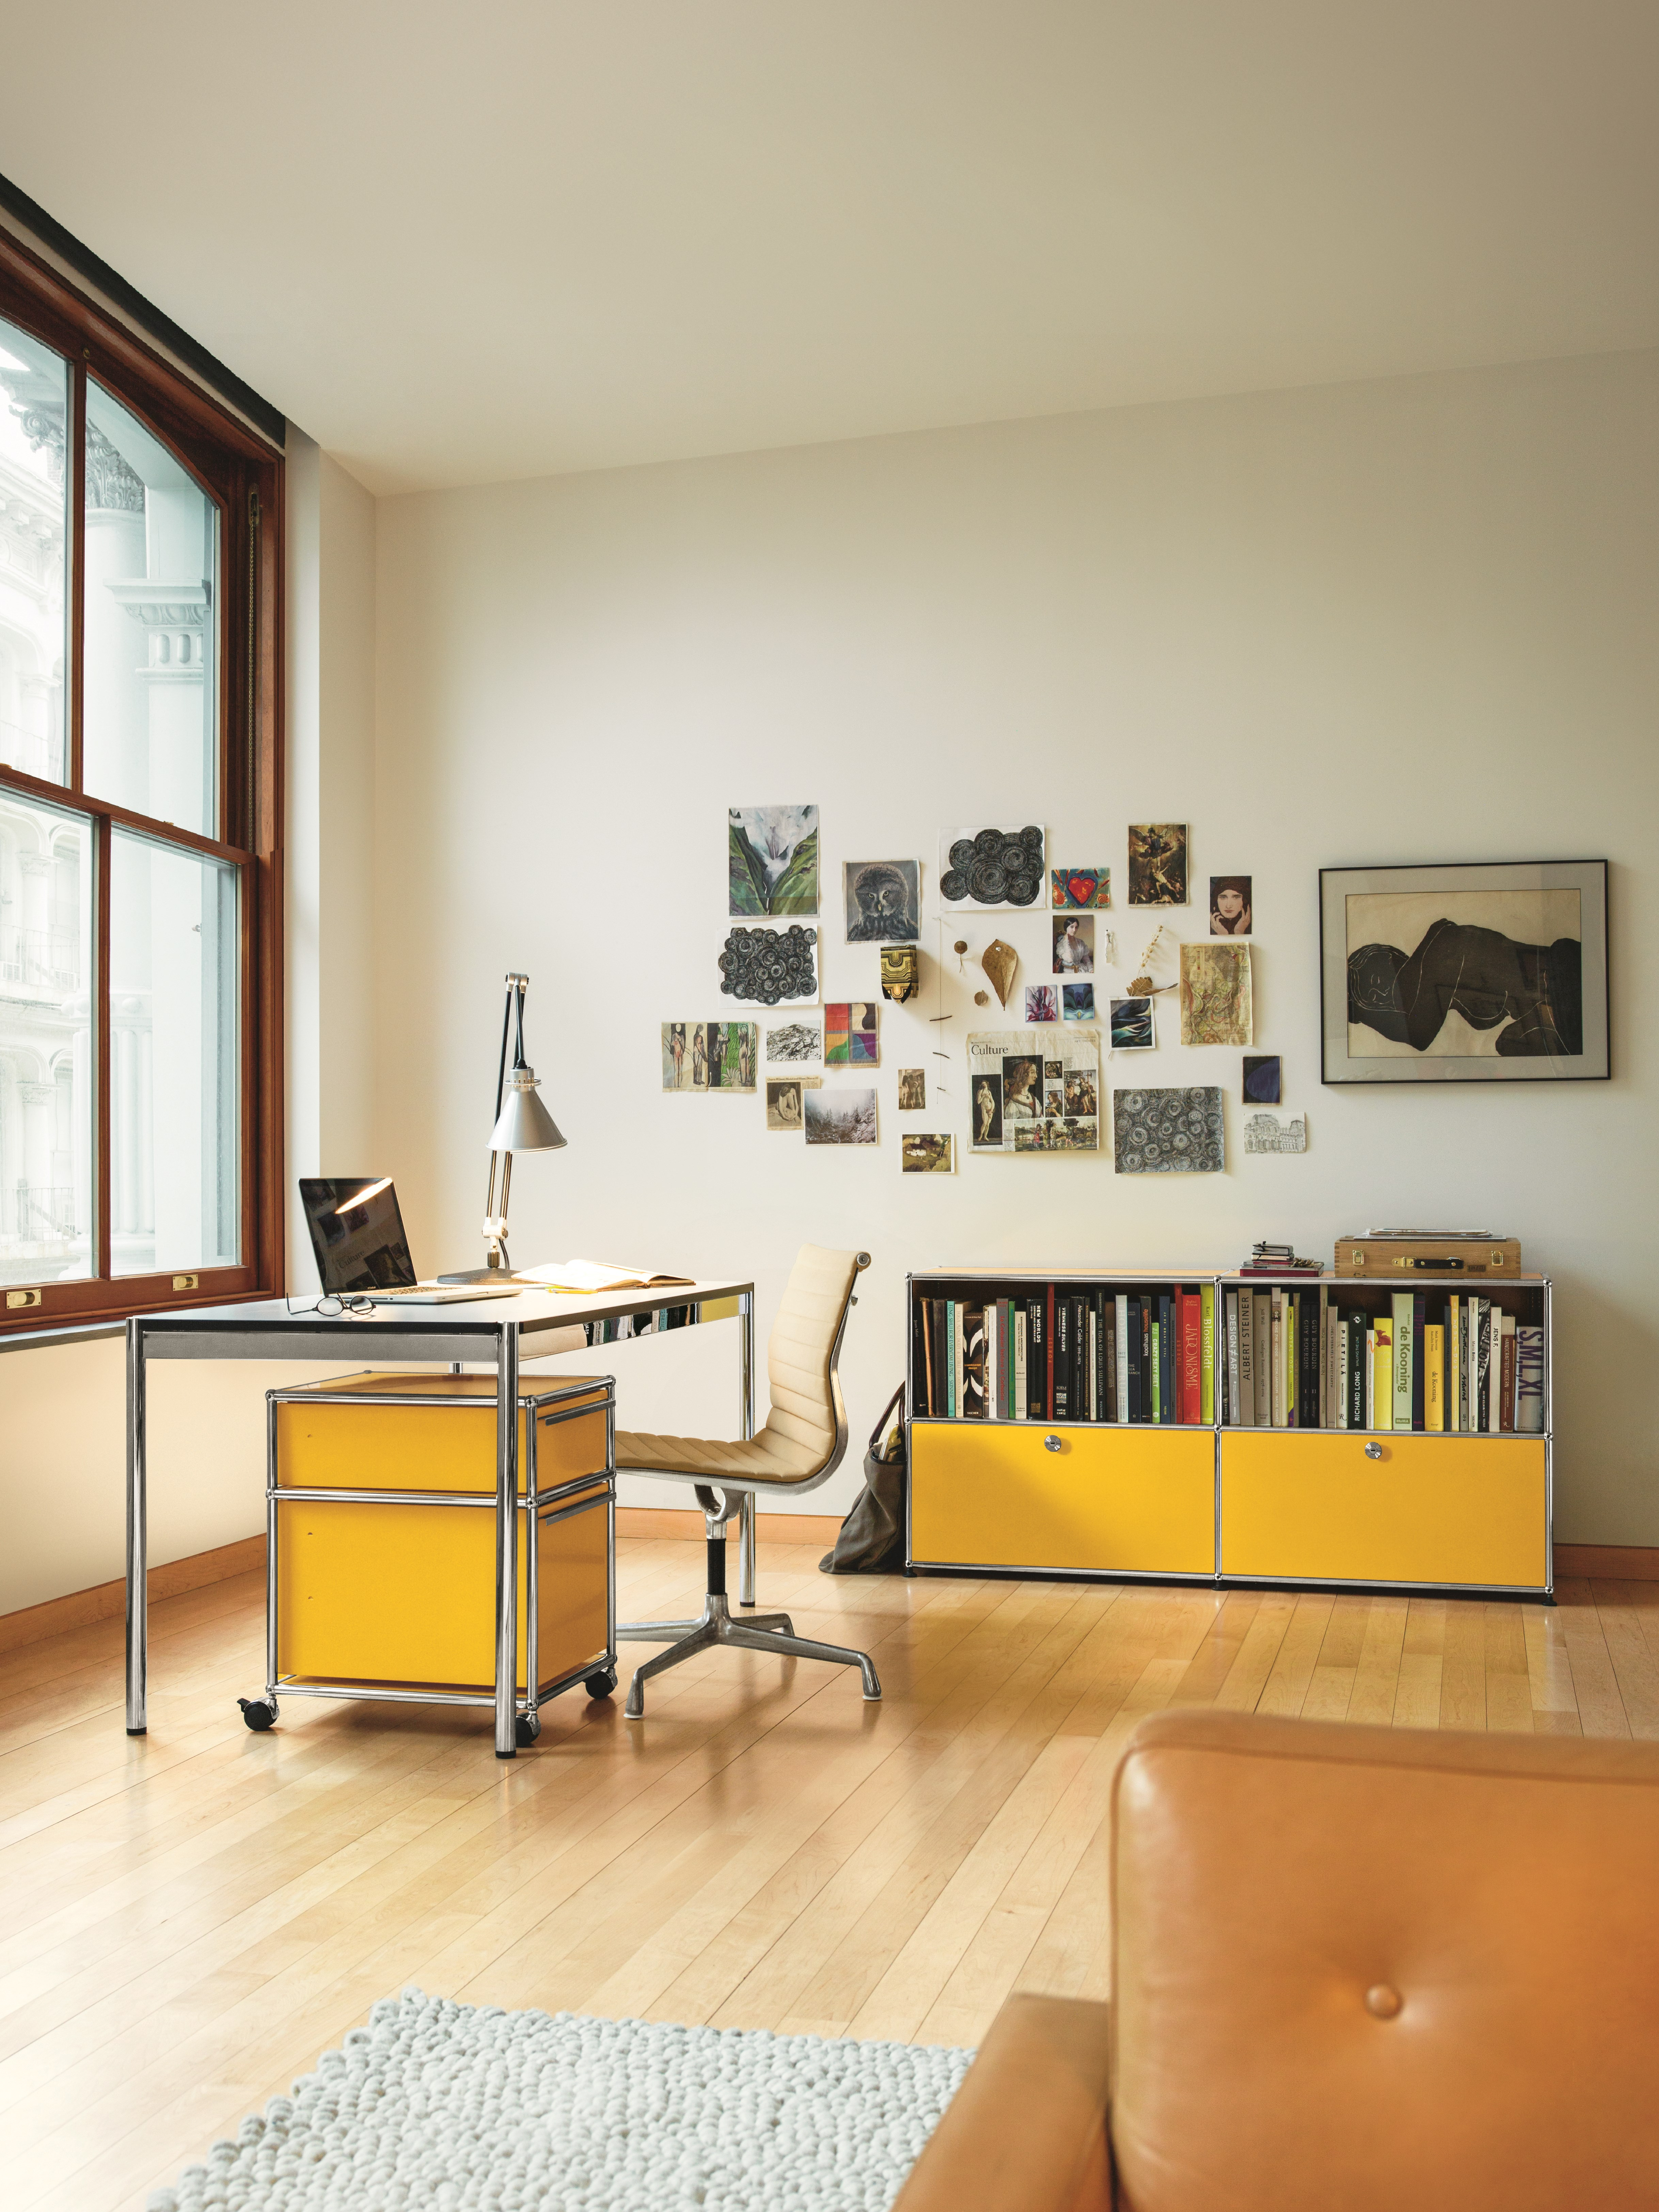 bespoke USM Haller home office pedestal and sideboard in yellow